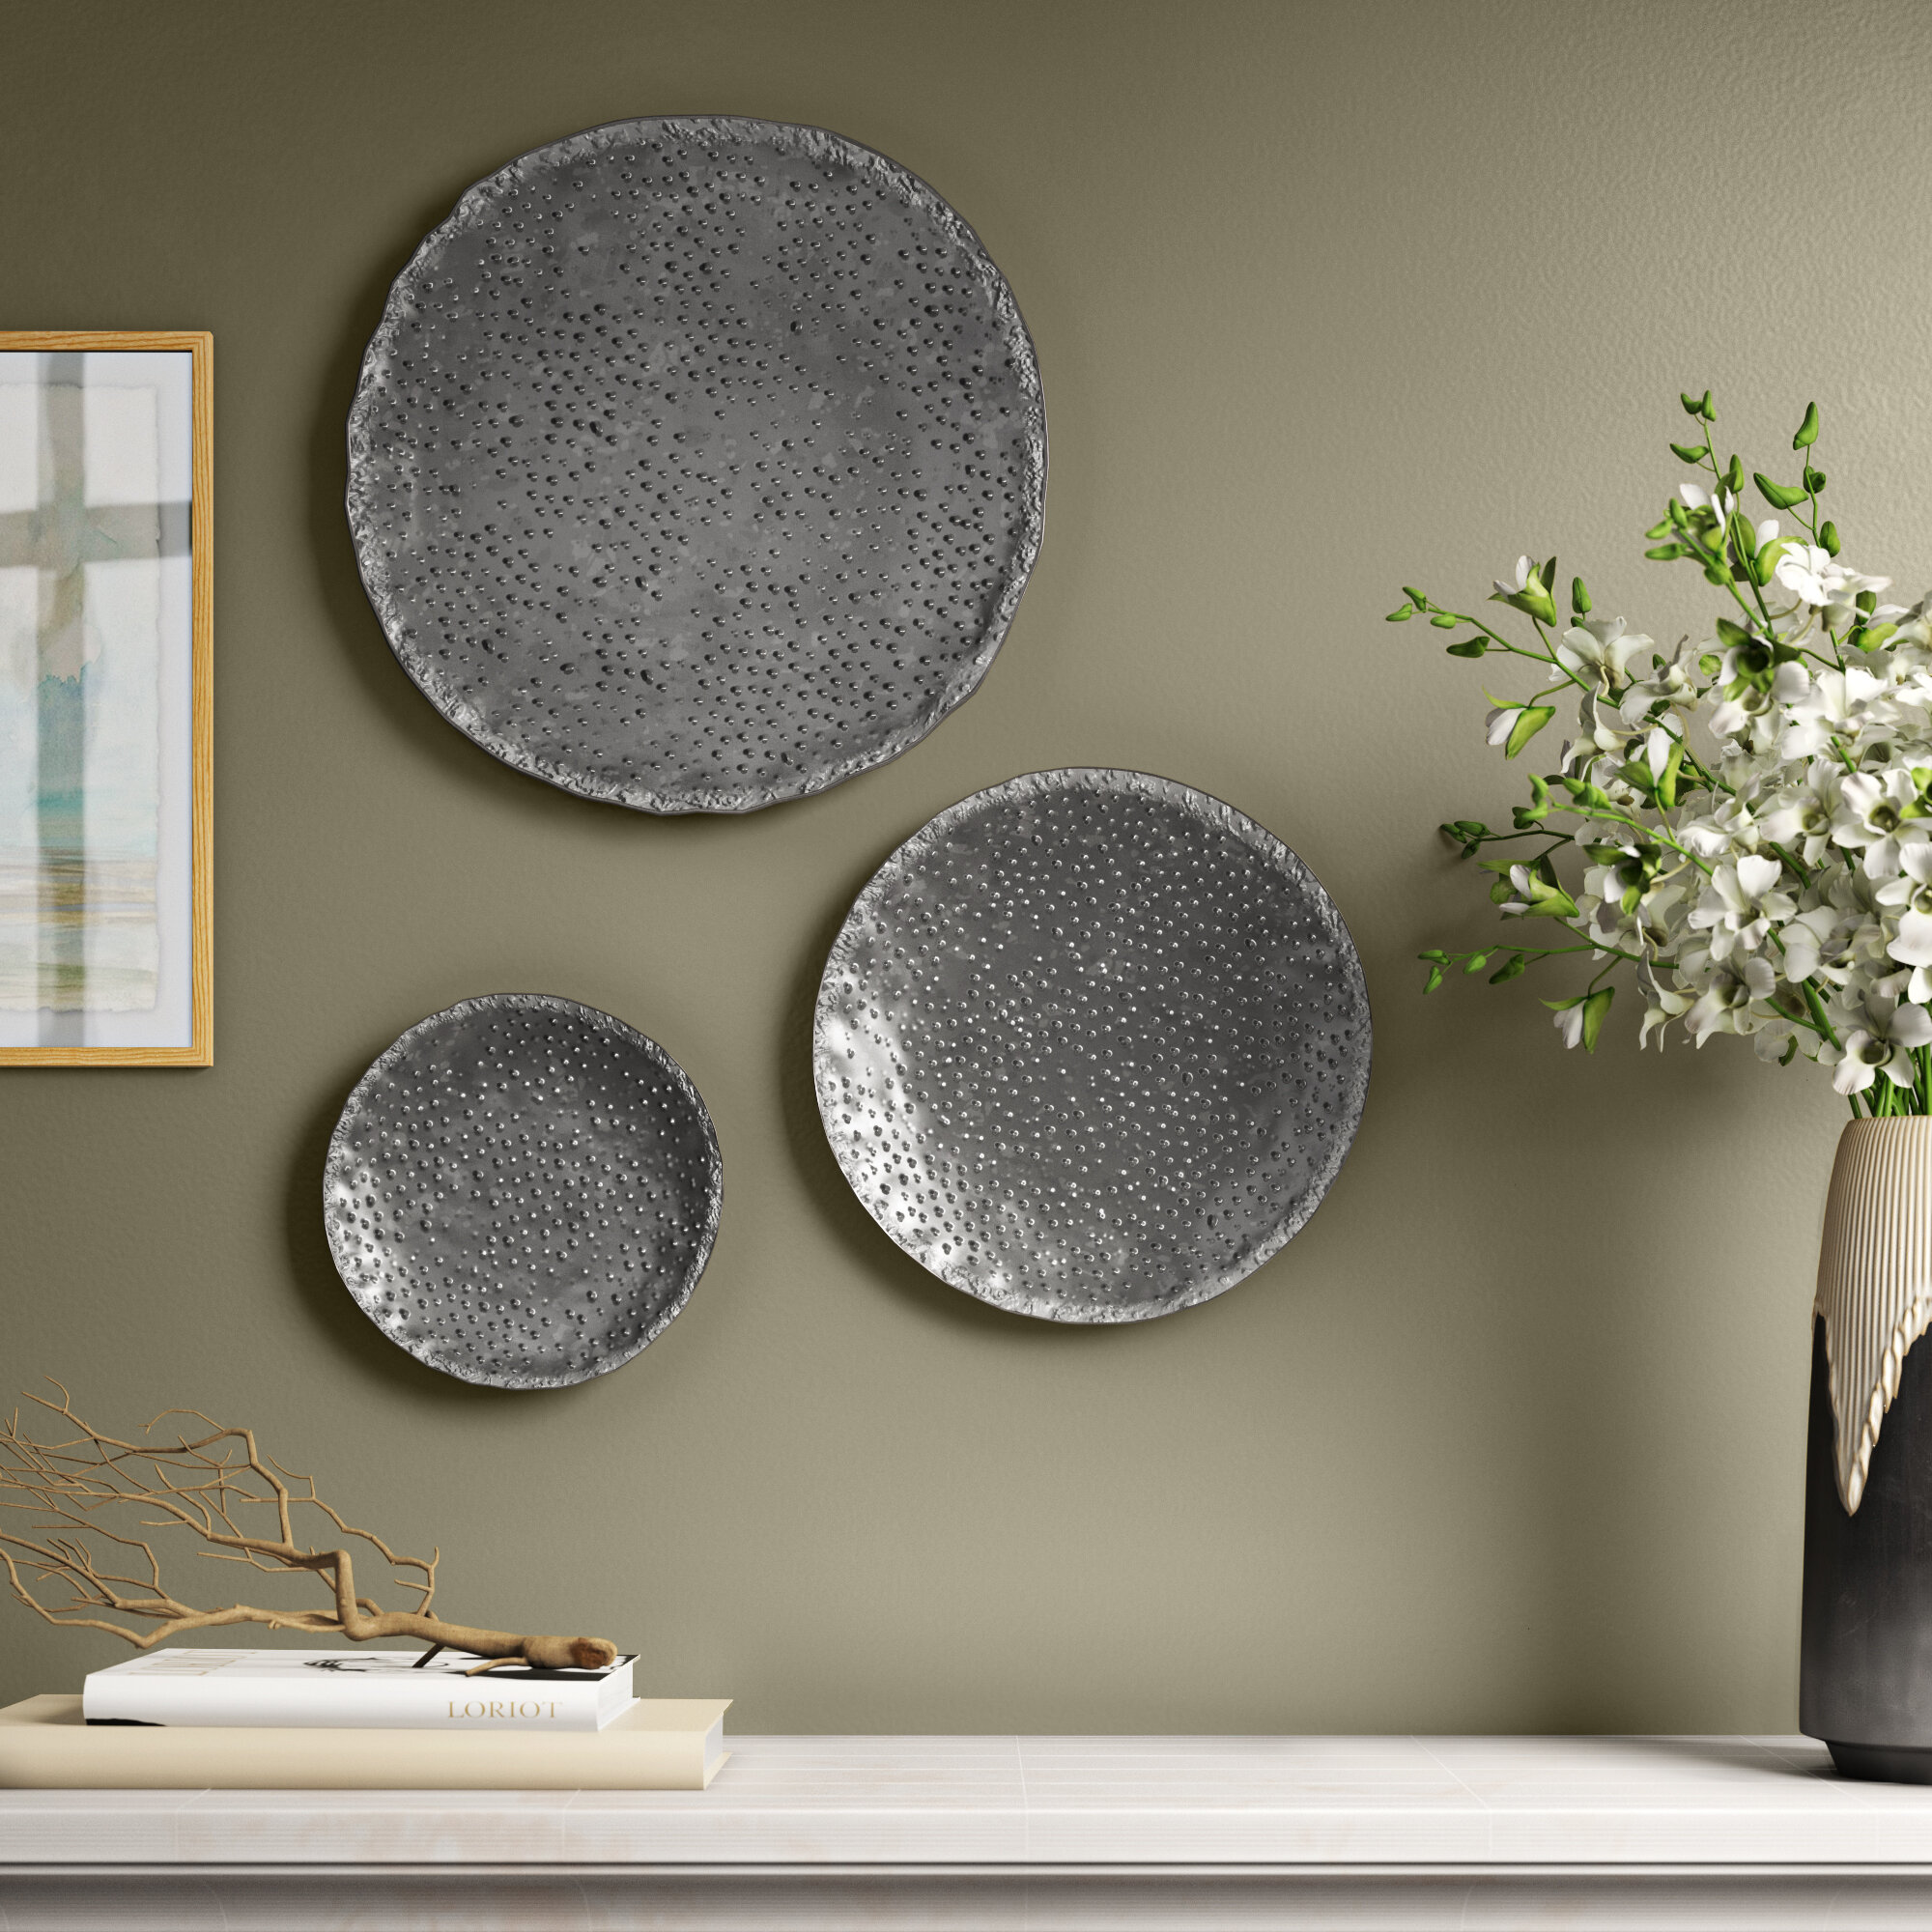 3 Piece Wall Accents You Ll Love In 2021 Wayfair